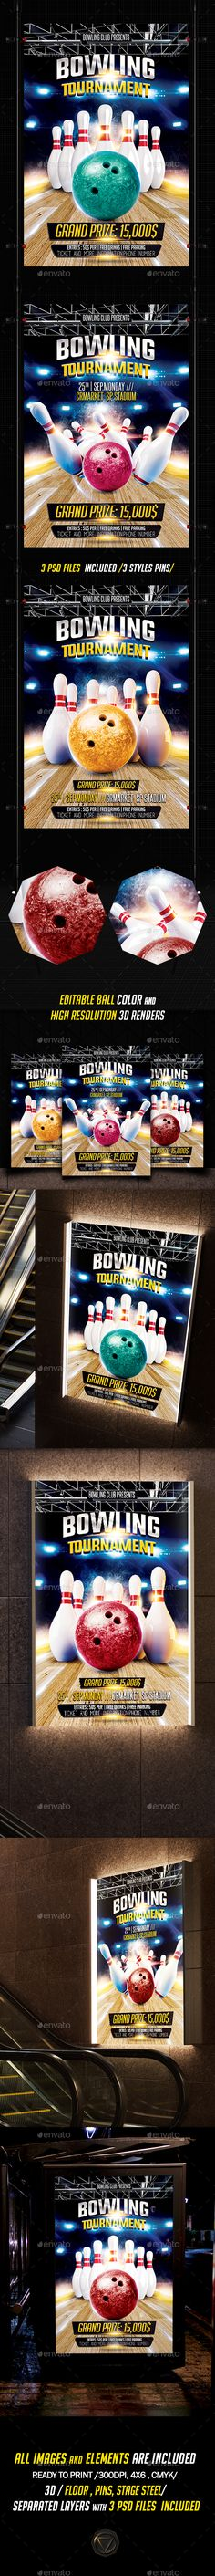 Bowling Tournament Flyer Bowling, Psd flyer templates and Flyer - bowling flyer template